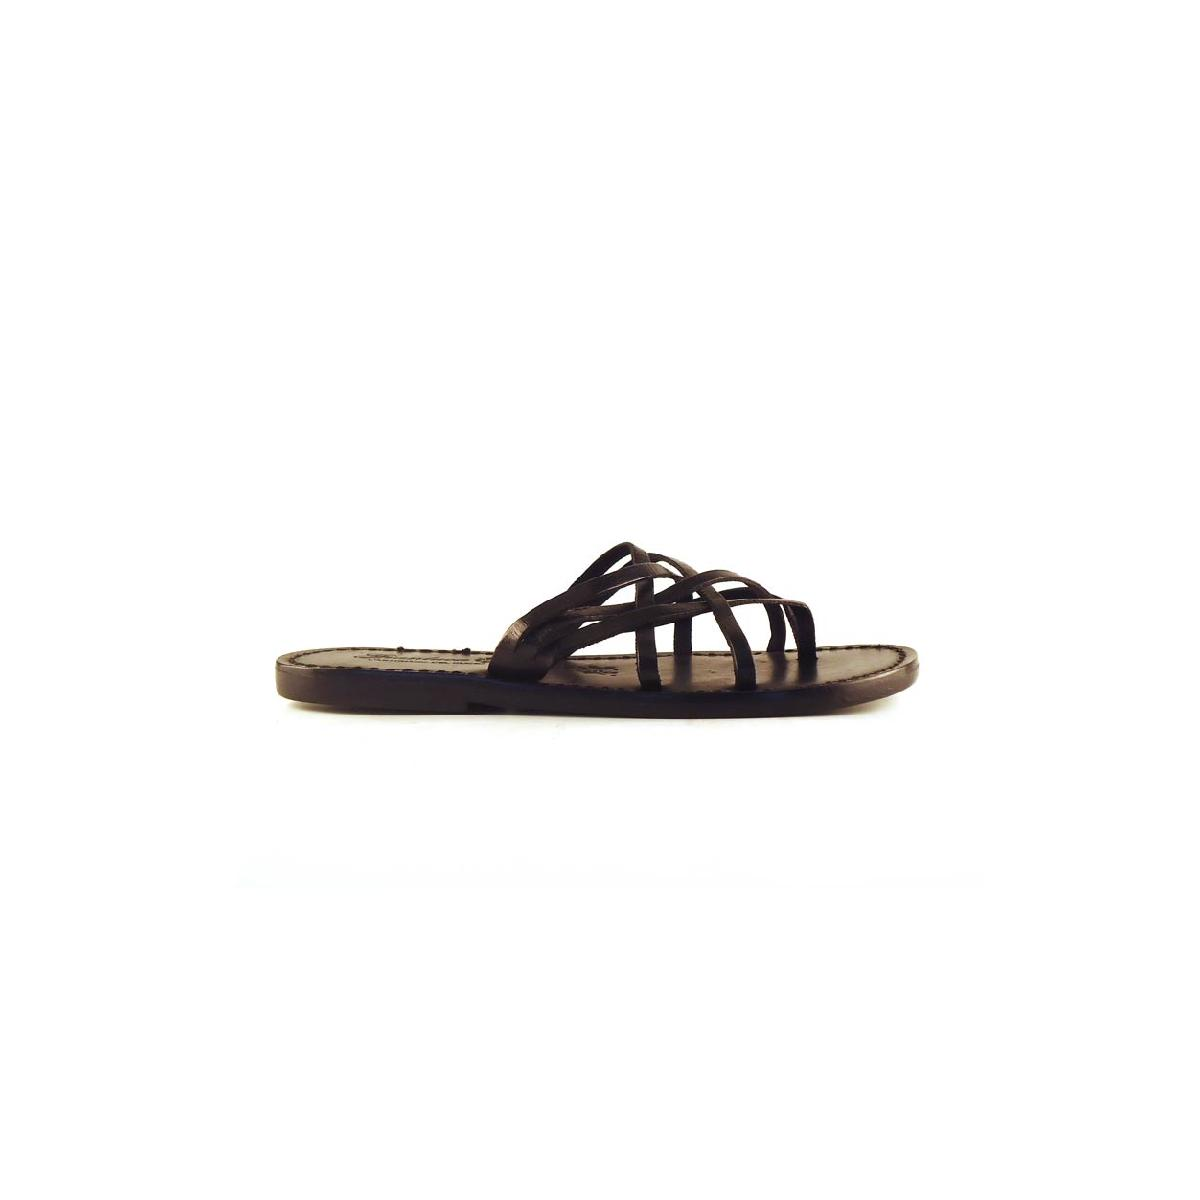 b8bdc6cf44a60 Handmade black braid leather womens slippers thongs with leather sole.  Previous. Next